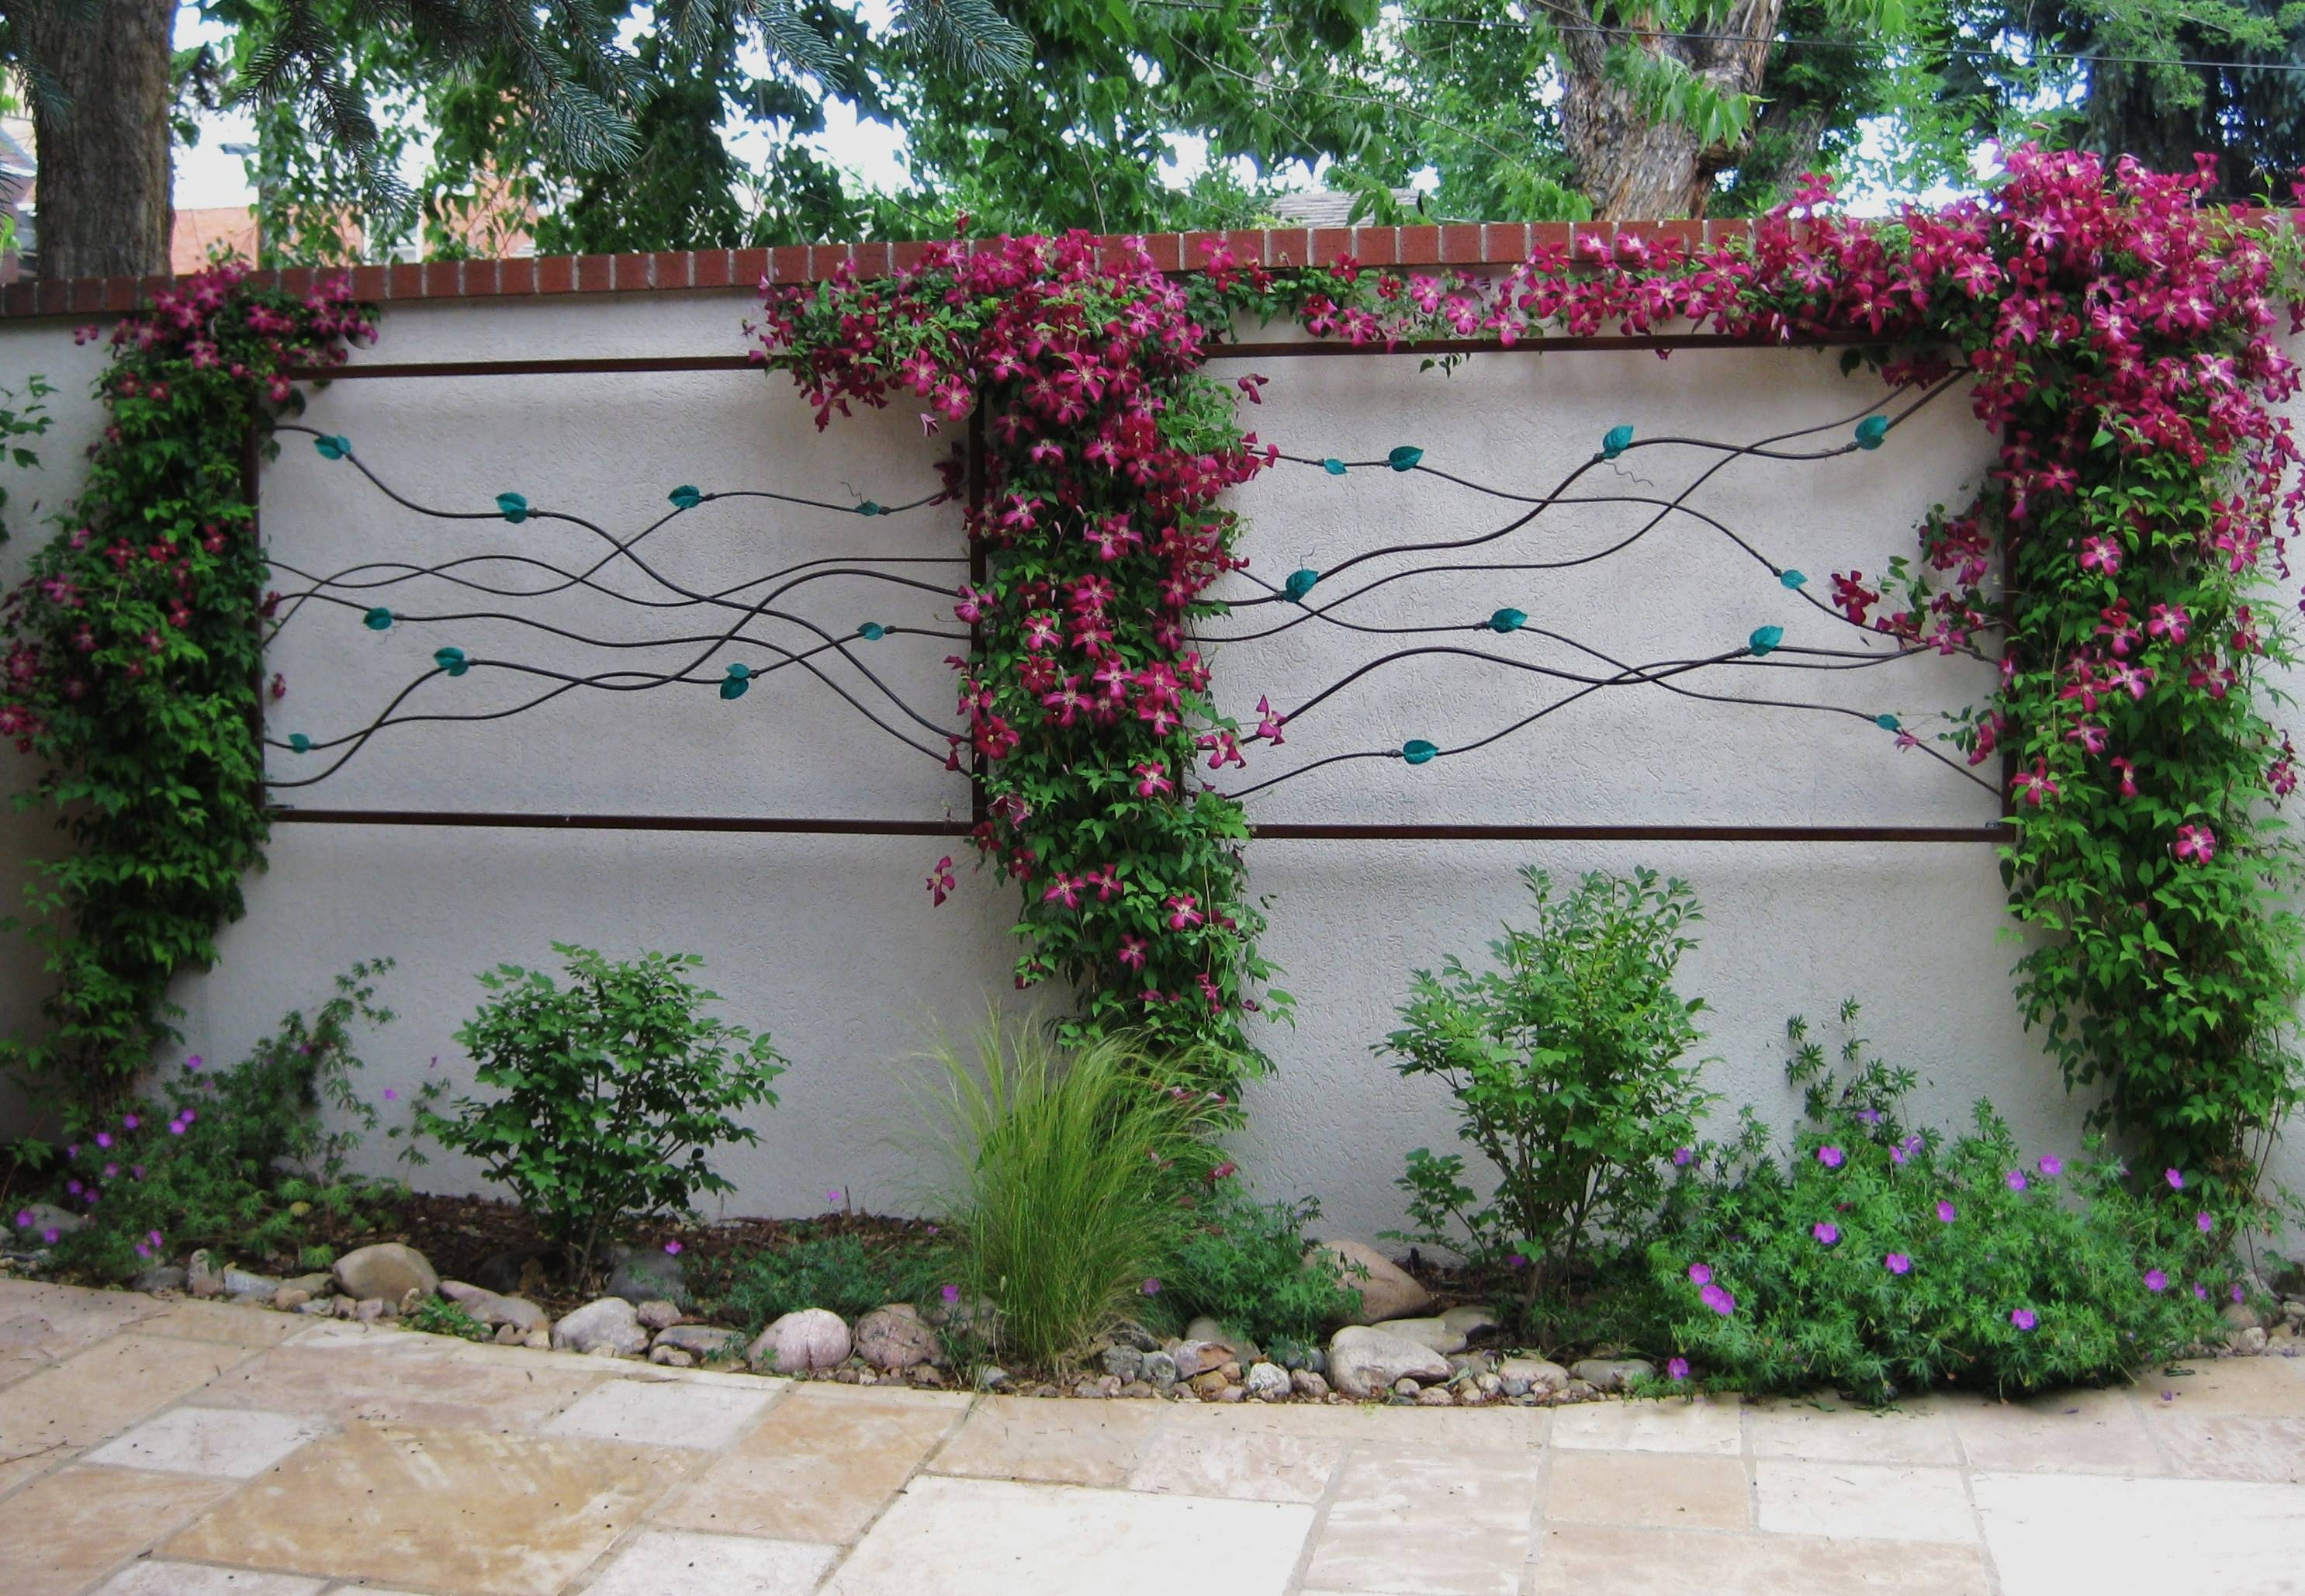 Wall Art Designs: Garden Wall Art Framed Art With Leaves Flower Within Most Popular Garden Wall Art (View 26 of 30)